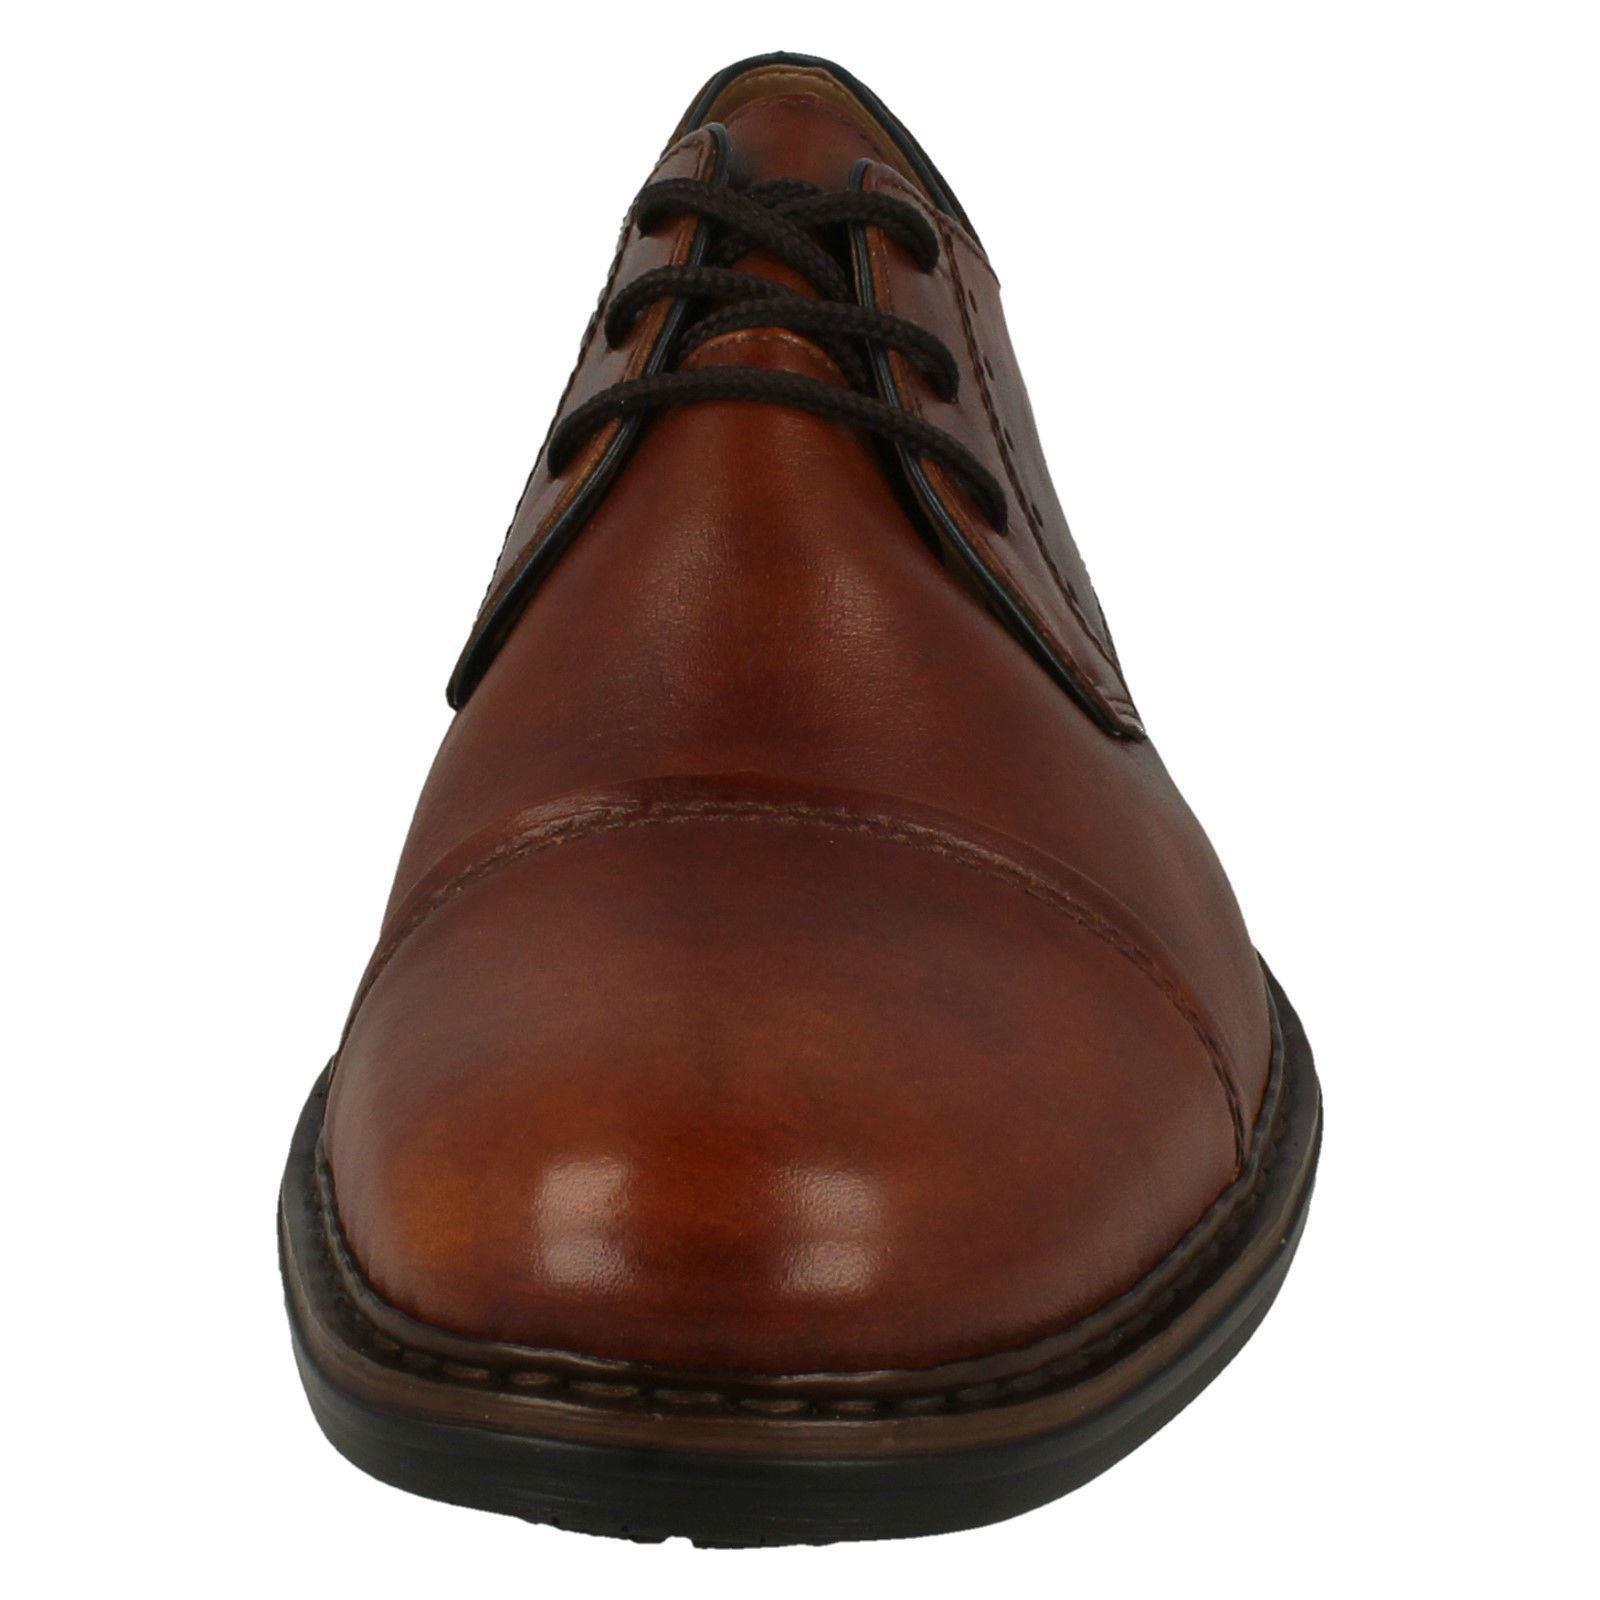 Style17617 Cap Rieker Smart Toe Formal Shoes Brown Lace Mens Up Leather TlF13KJc